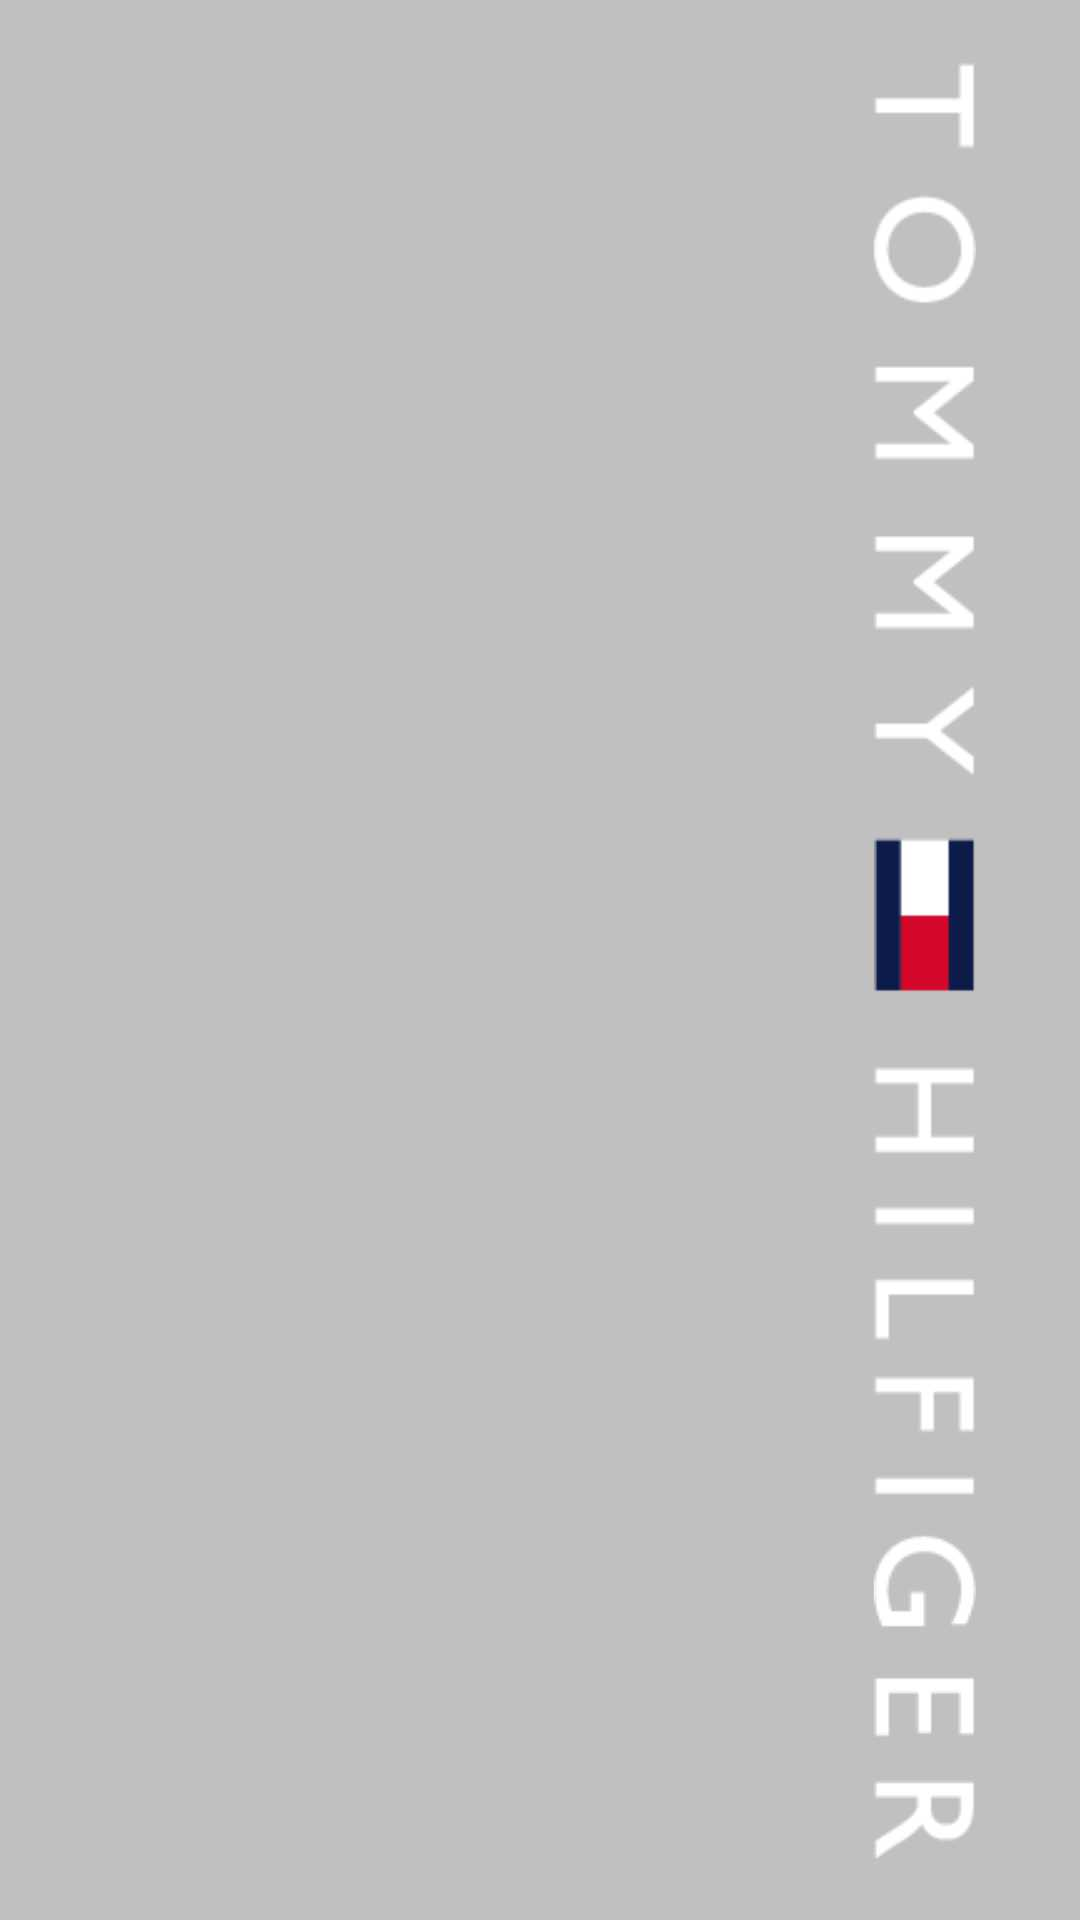 tommyhilfiger13 - TOMMY HILFIGER/トミー・ヒルフィガーの高画質スマホ壁紙20枚 [iPhone&Androidに対応]